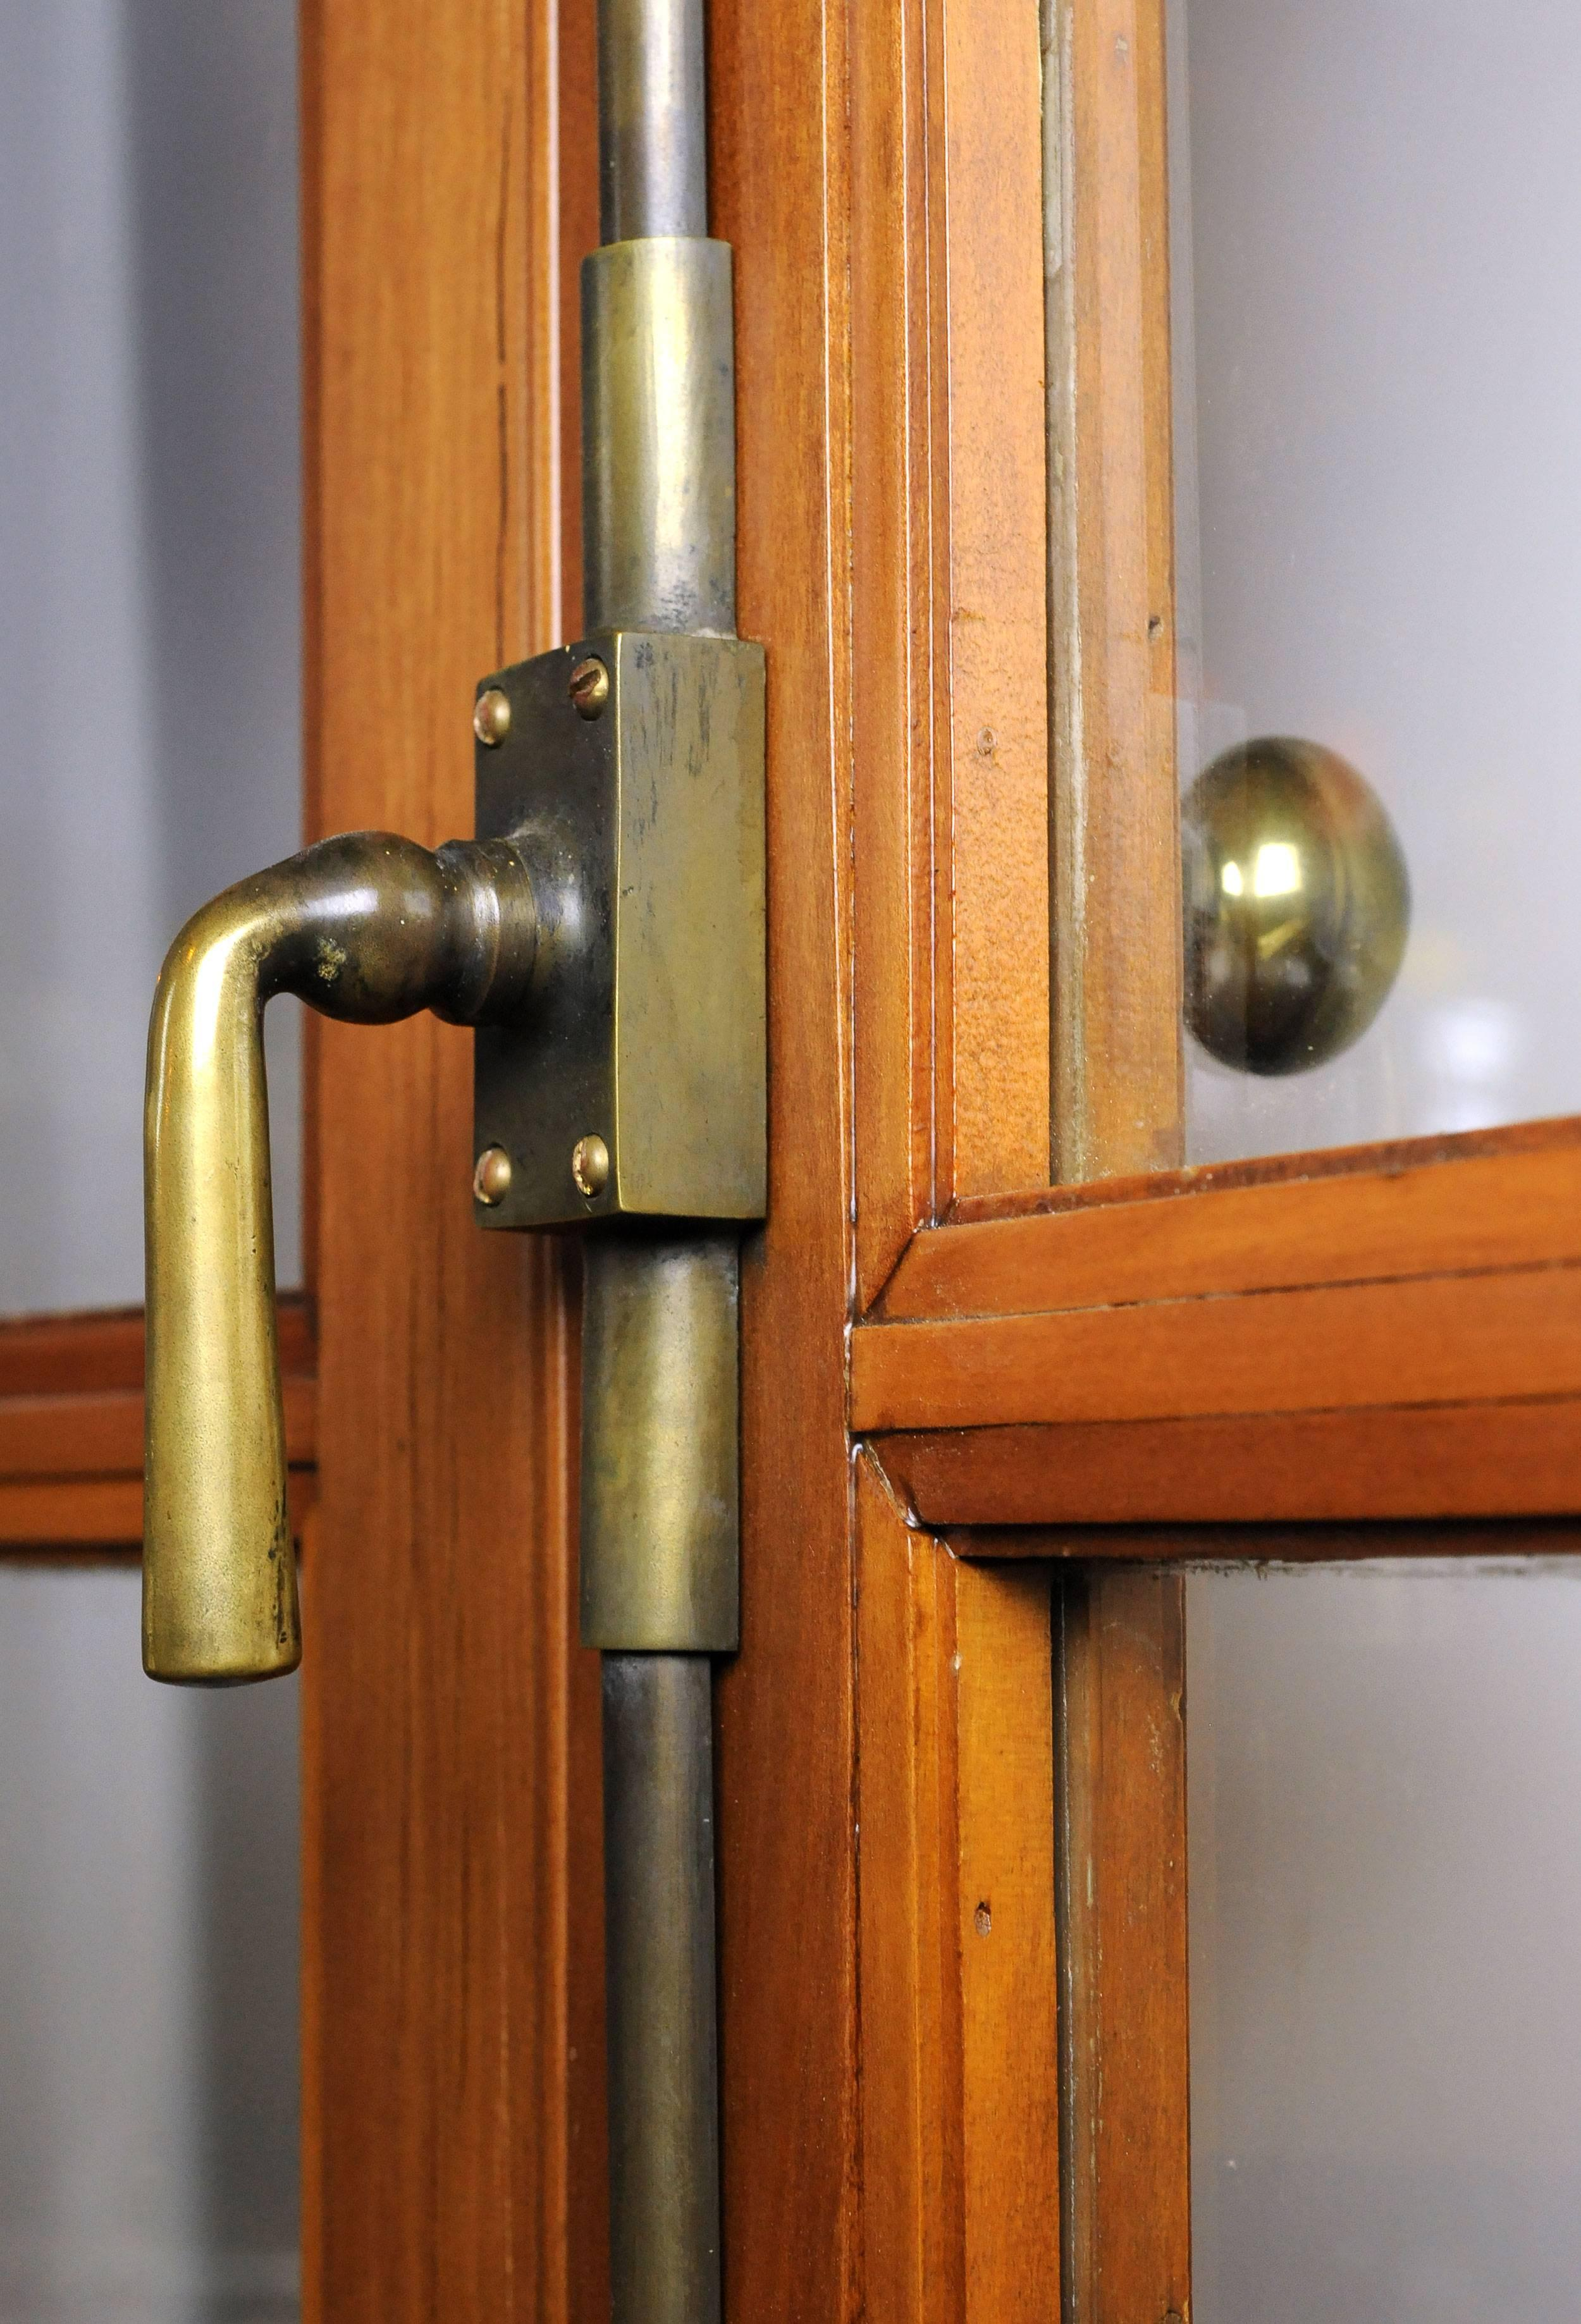 & French Doors with Cremone Bolt and Jamb For Sale at 1stdibs